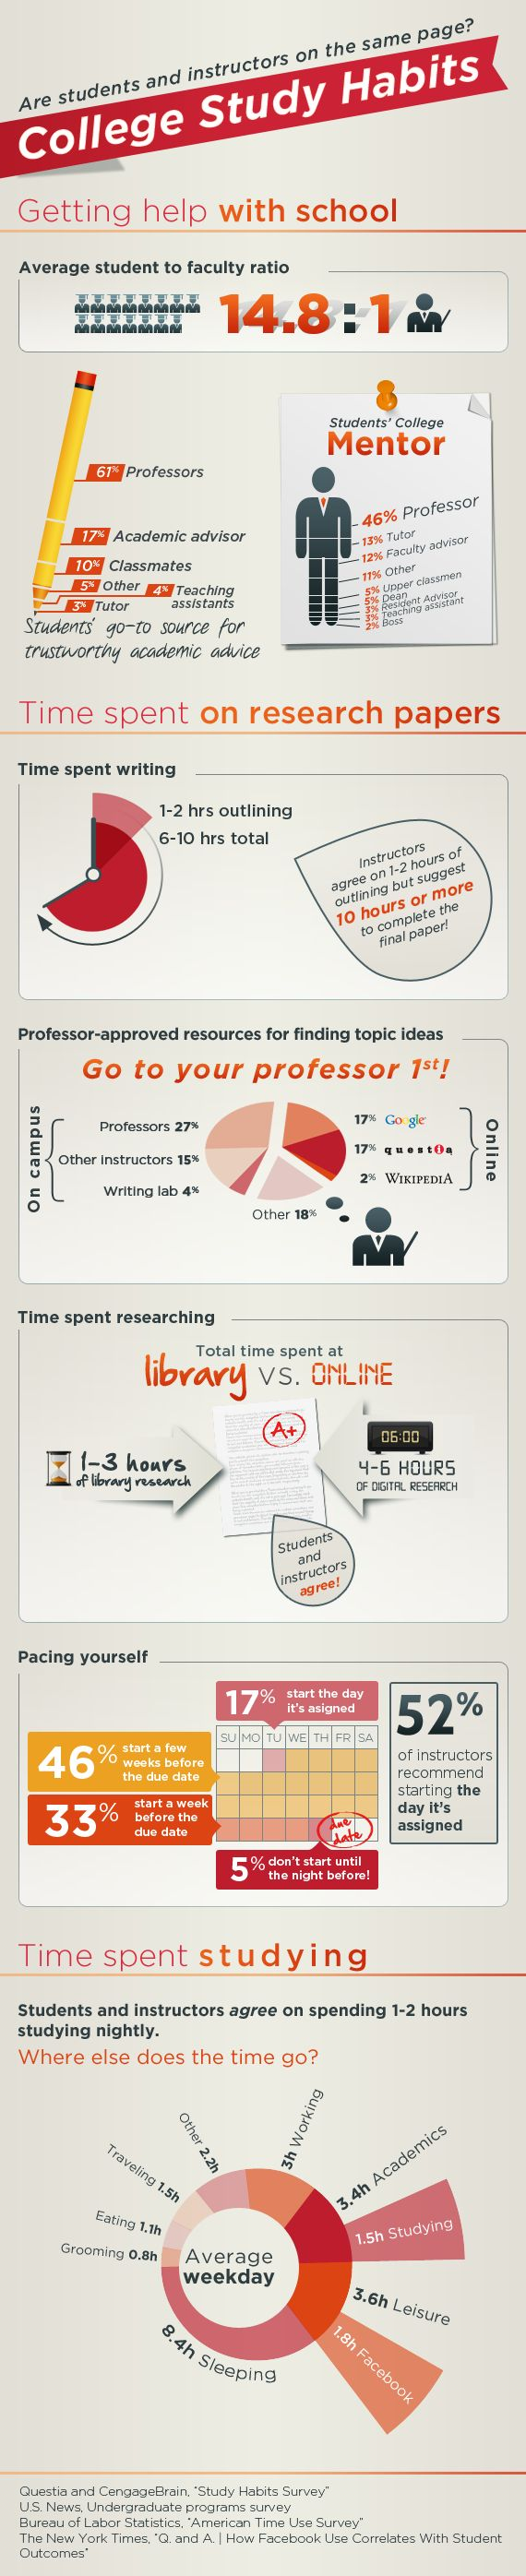 Discover Study Habits That Support Your Learning Style